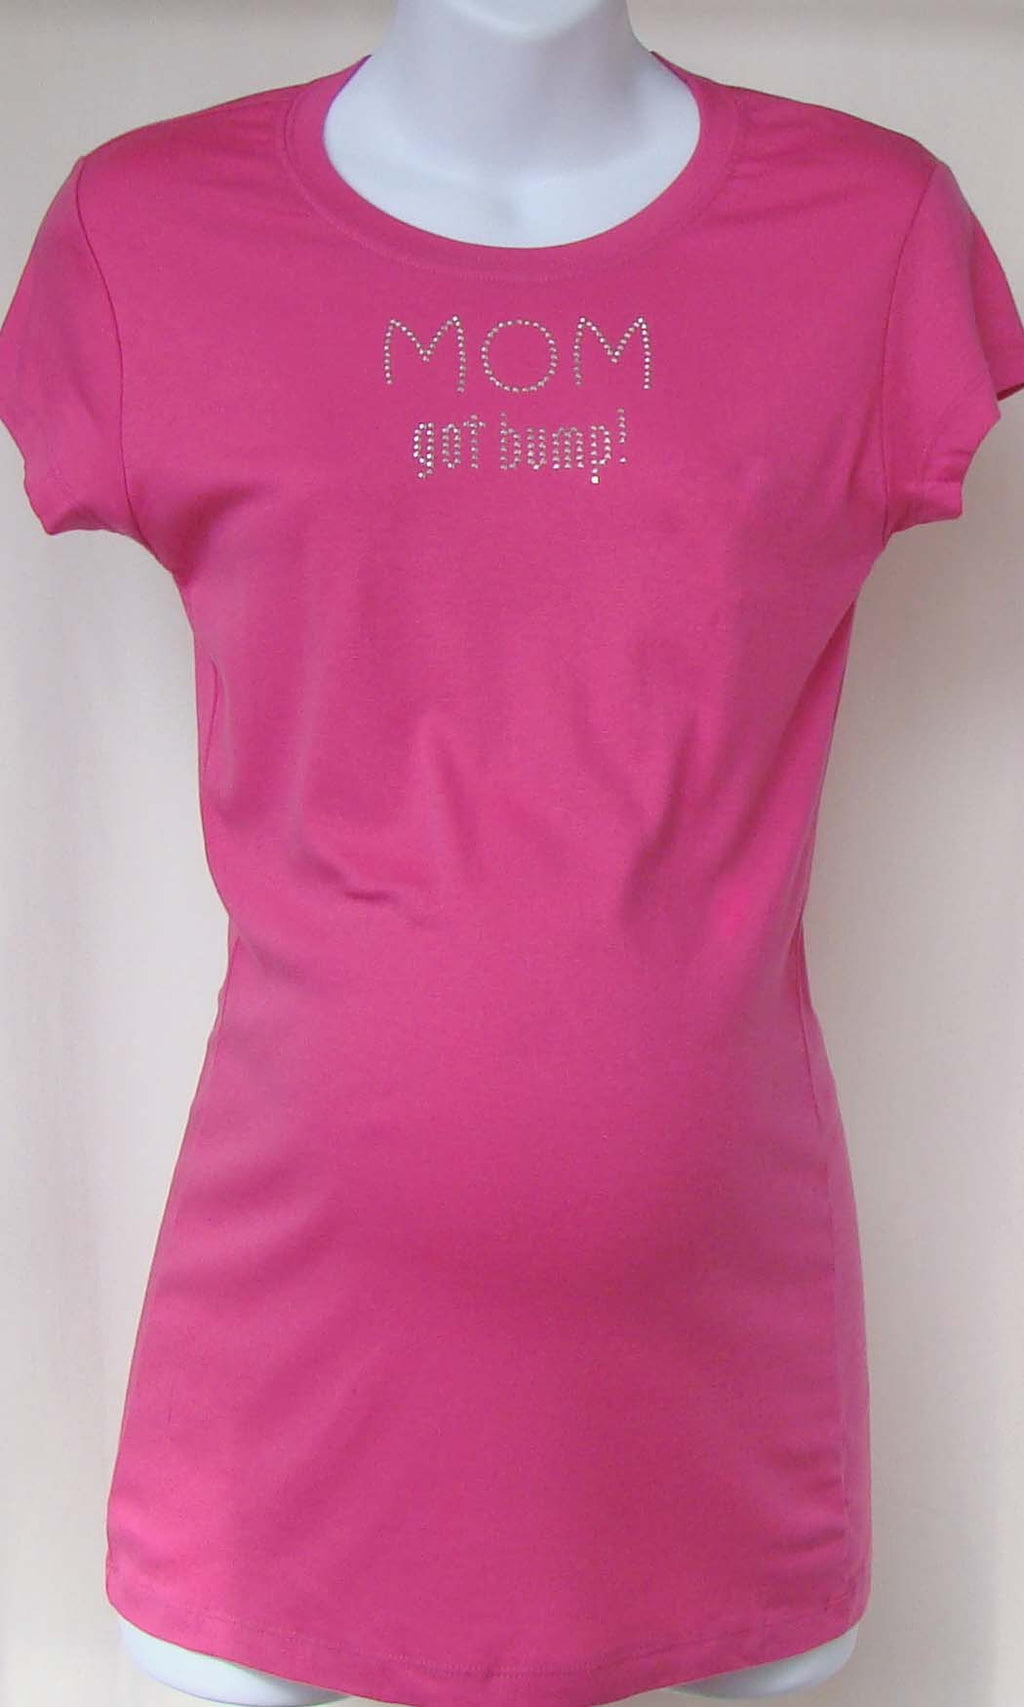 Mom Got Bump' Pink Short Sleeve Shirt